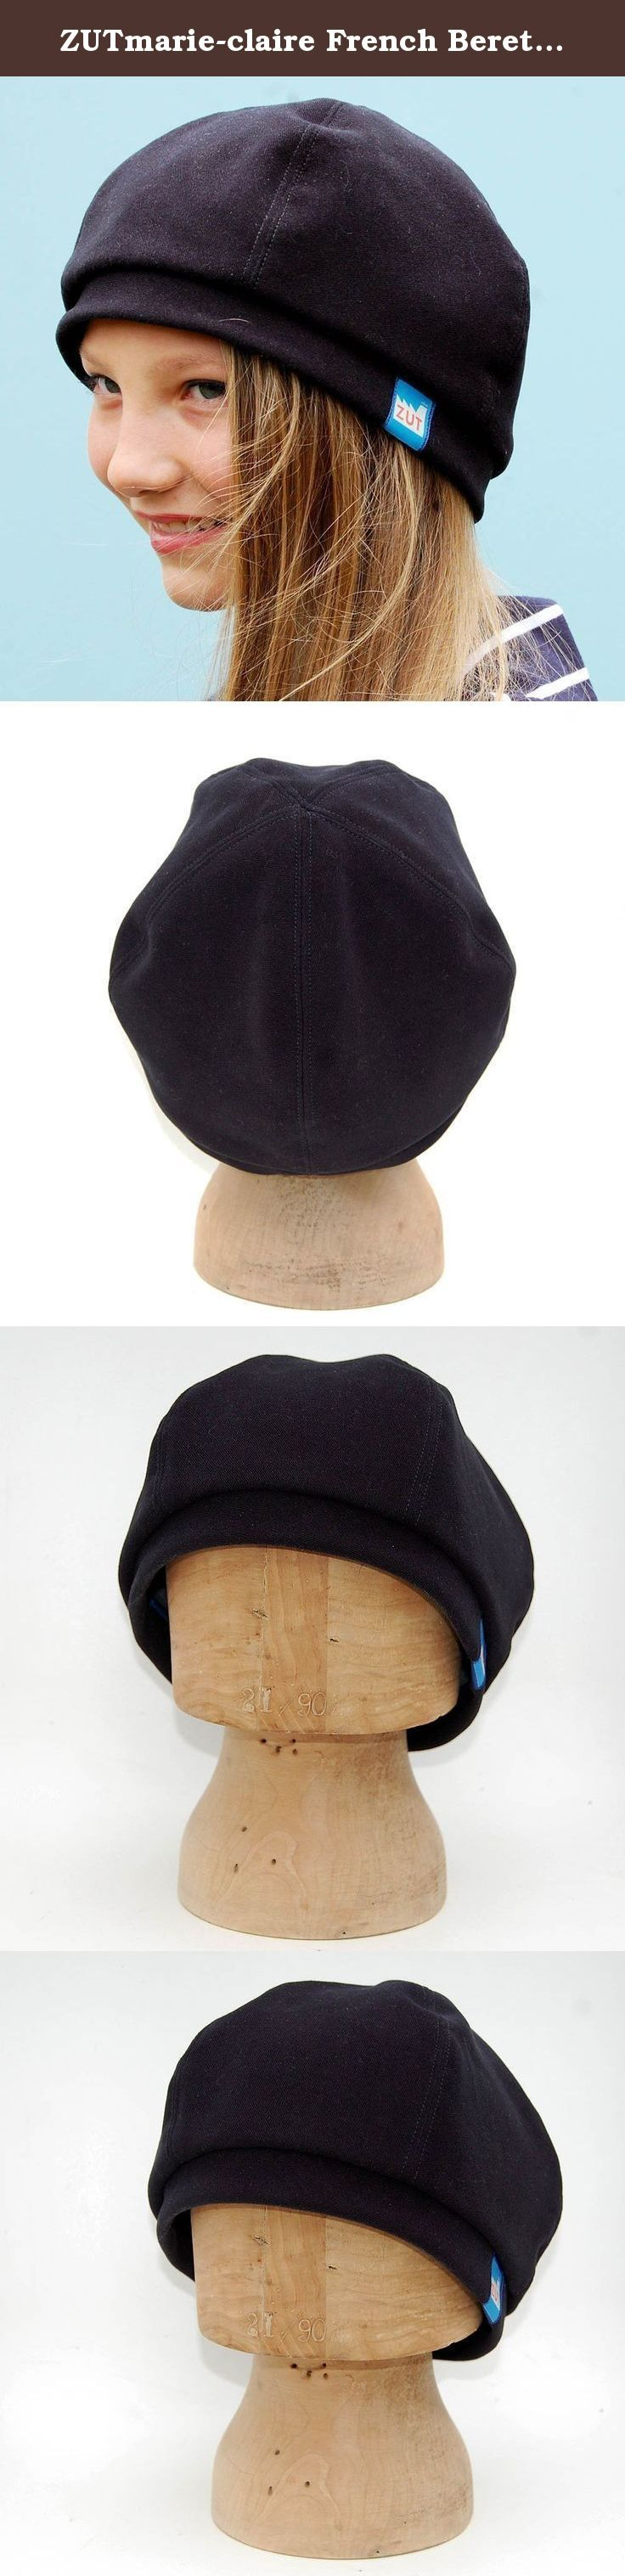 ZUTmarie-claire French Beret in Warm Italian Gaberdine. Black French beret with structured 5 piece crown in luxurious, velvety Italian designer gaberdine. Soft and cosy showerproof beret with a grey chambray French cotton lining. The simple sculptural shape is perfect for 2016's minimal styling. This beret goes with anything and can easily be stored in your bag in case the weather turns nasty. Use the zoom feature to check the top stitching and attention to detail.